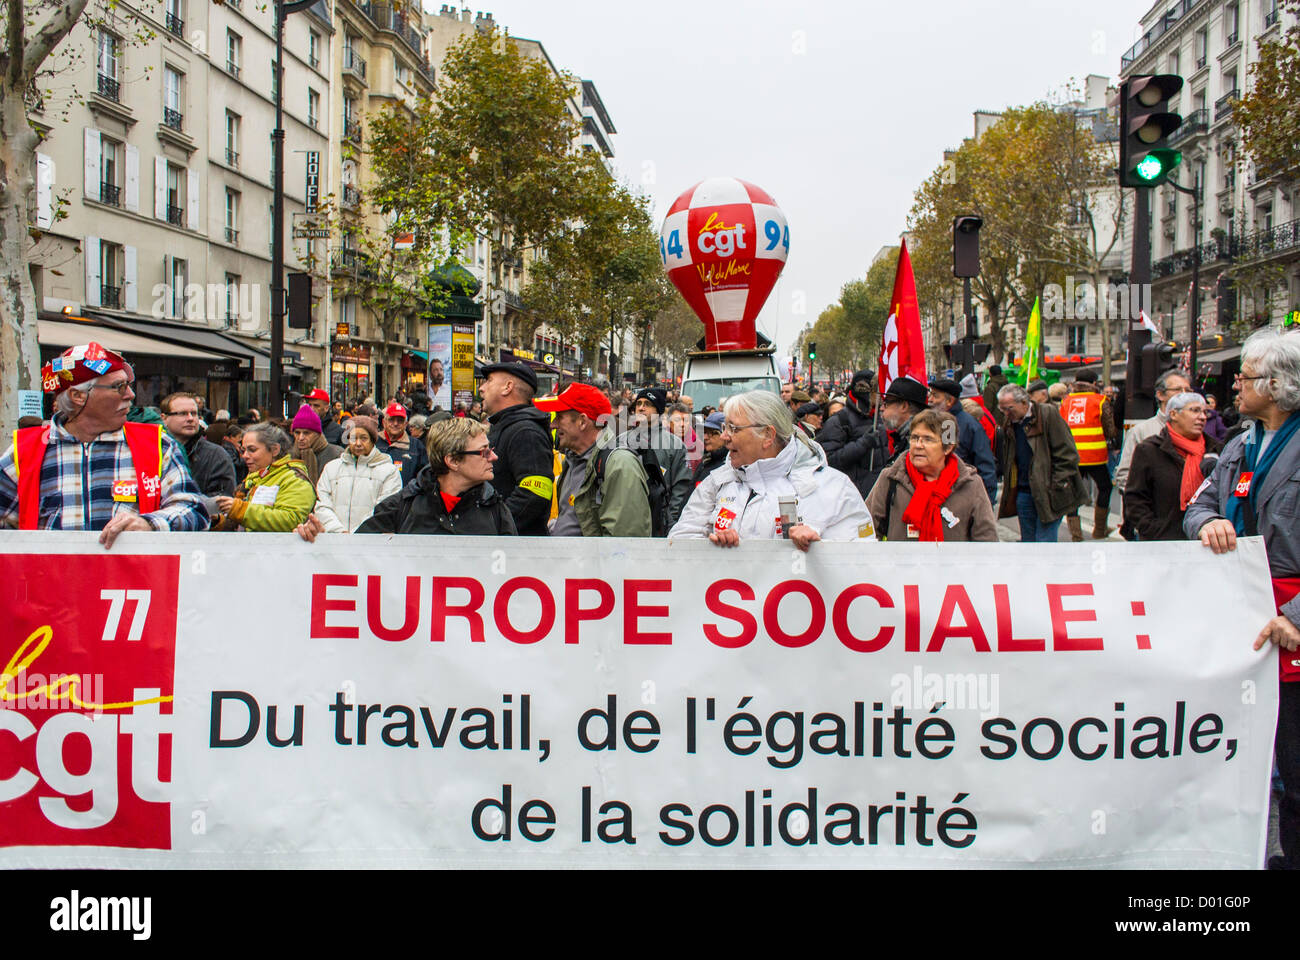 Paris, France, Crowd Holding Banners at Anti-Austerity Demonstration, French Labor Unions, CGT, - Stock Image